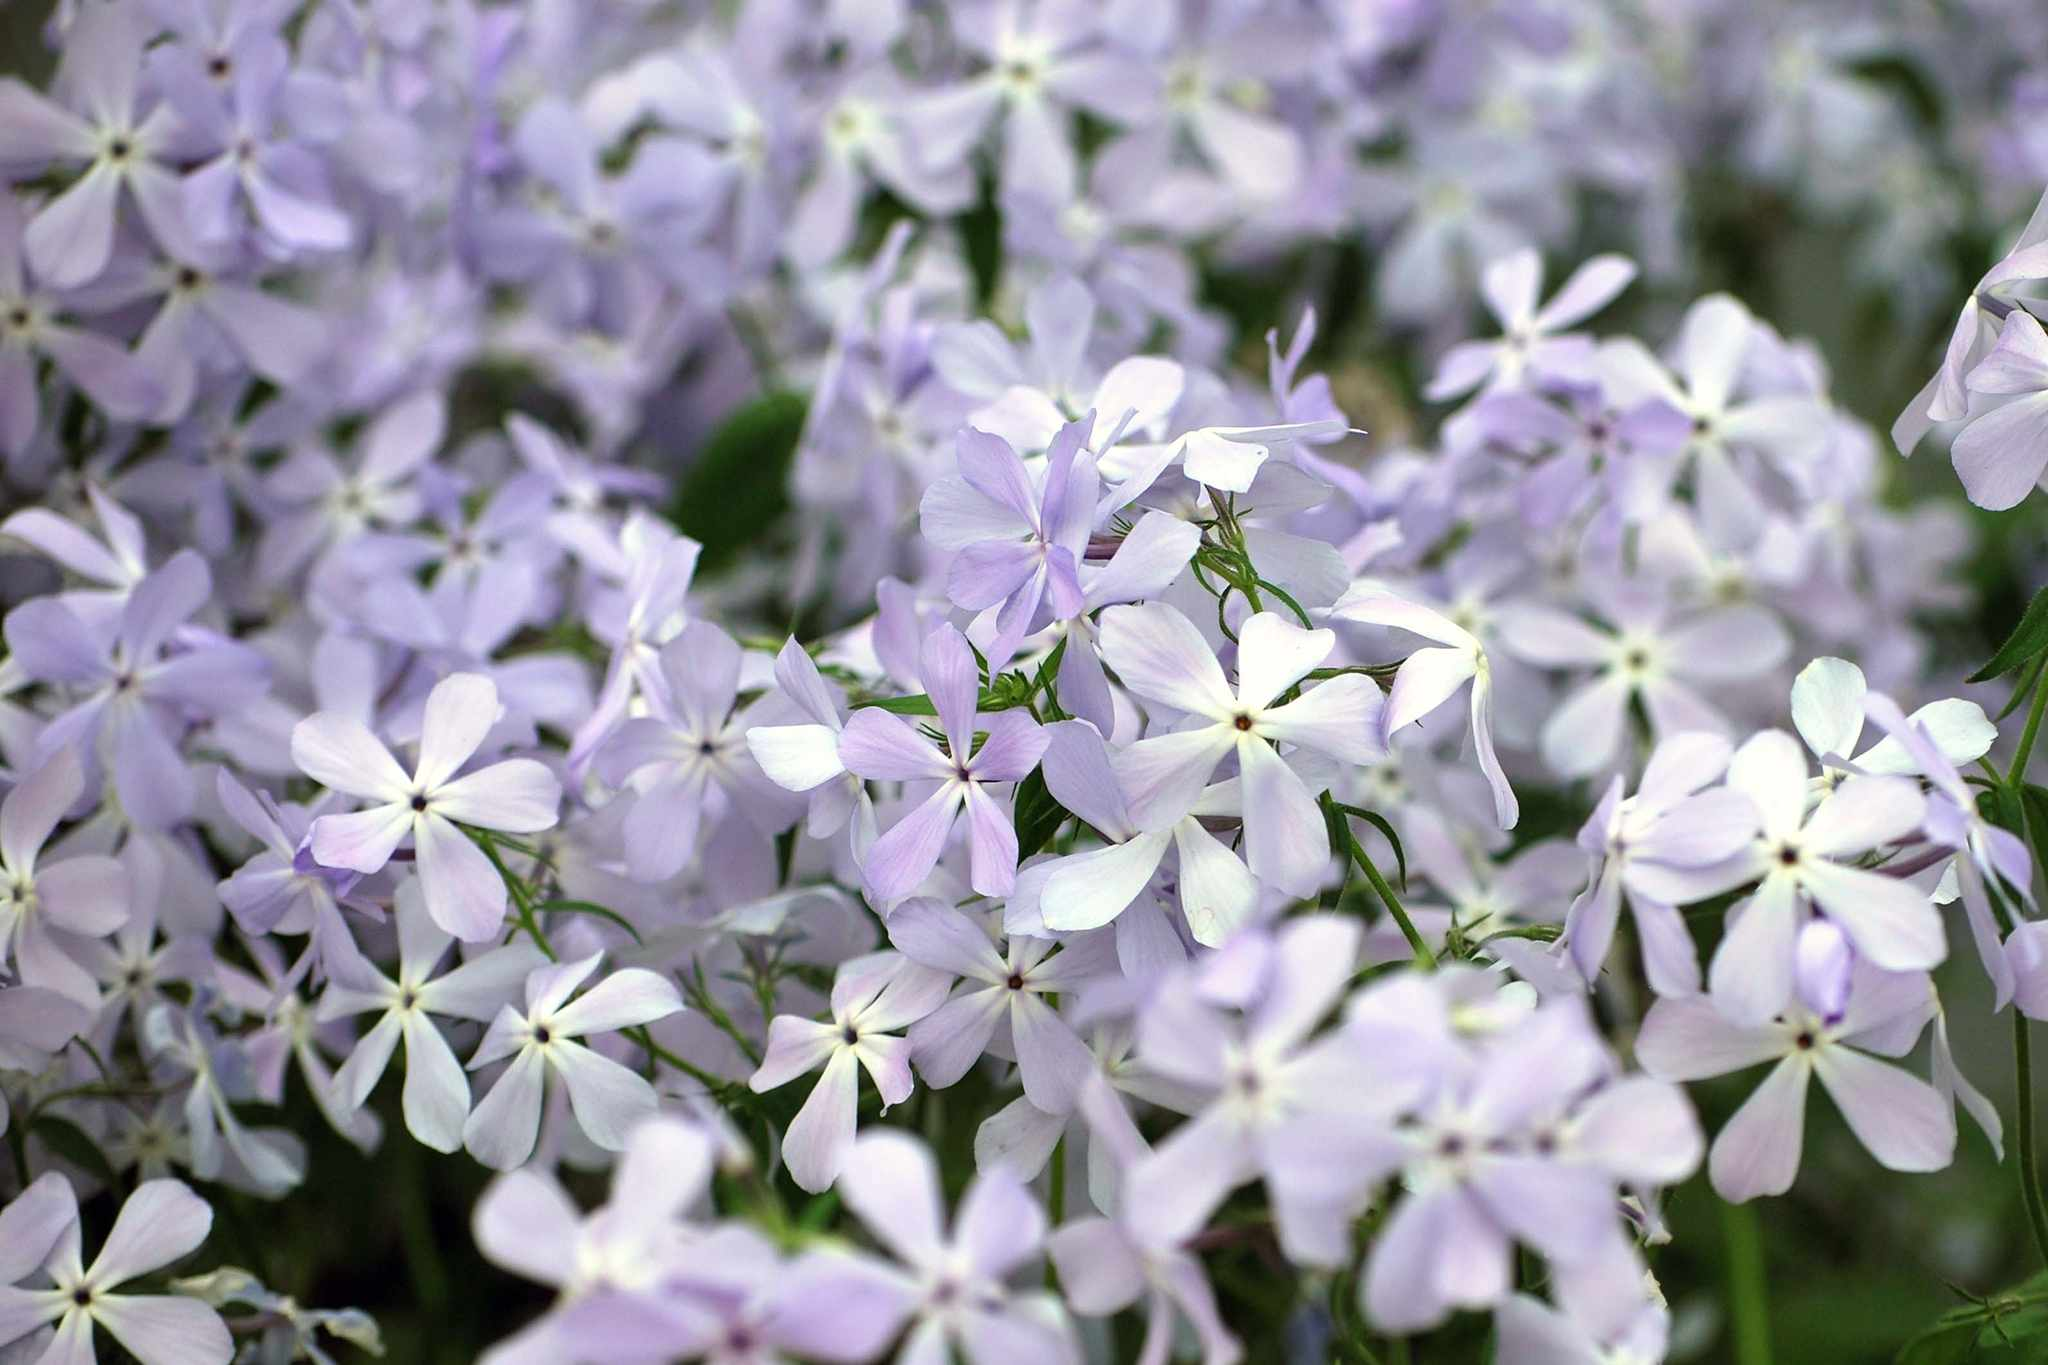 Phlox- 'Clouds of Perfume' from Hayloft